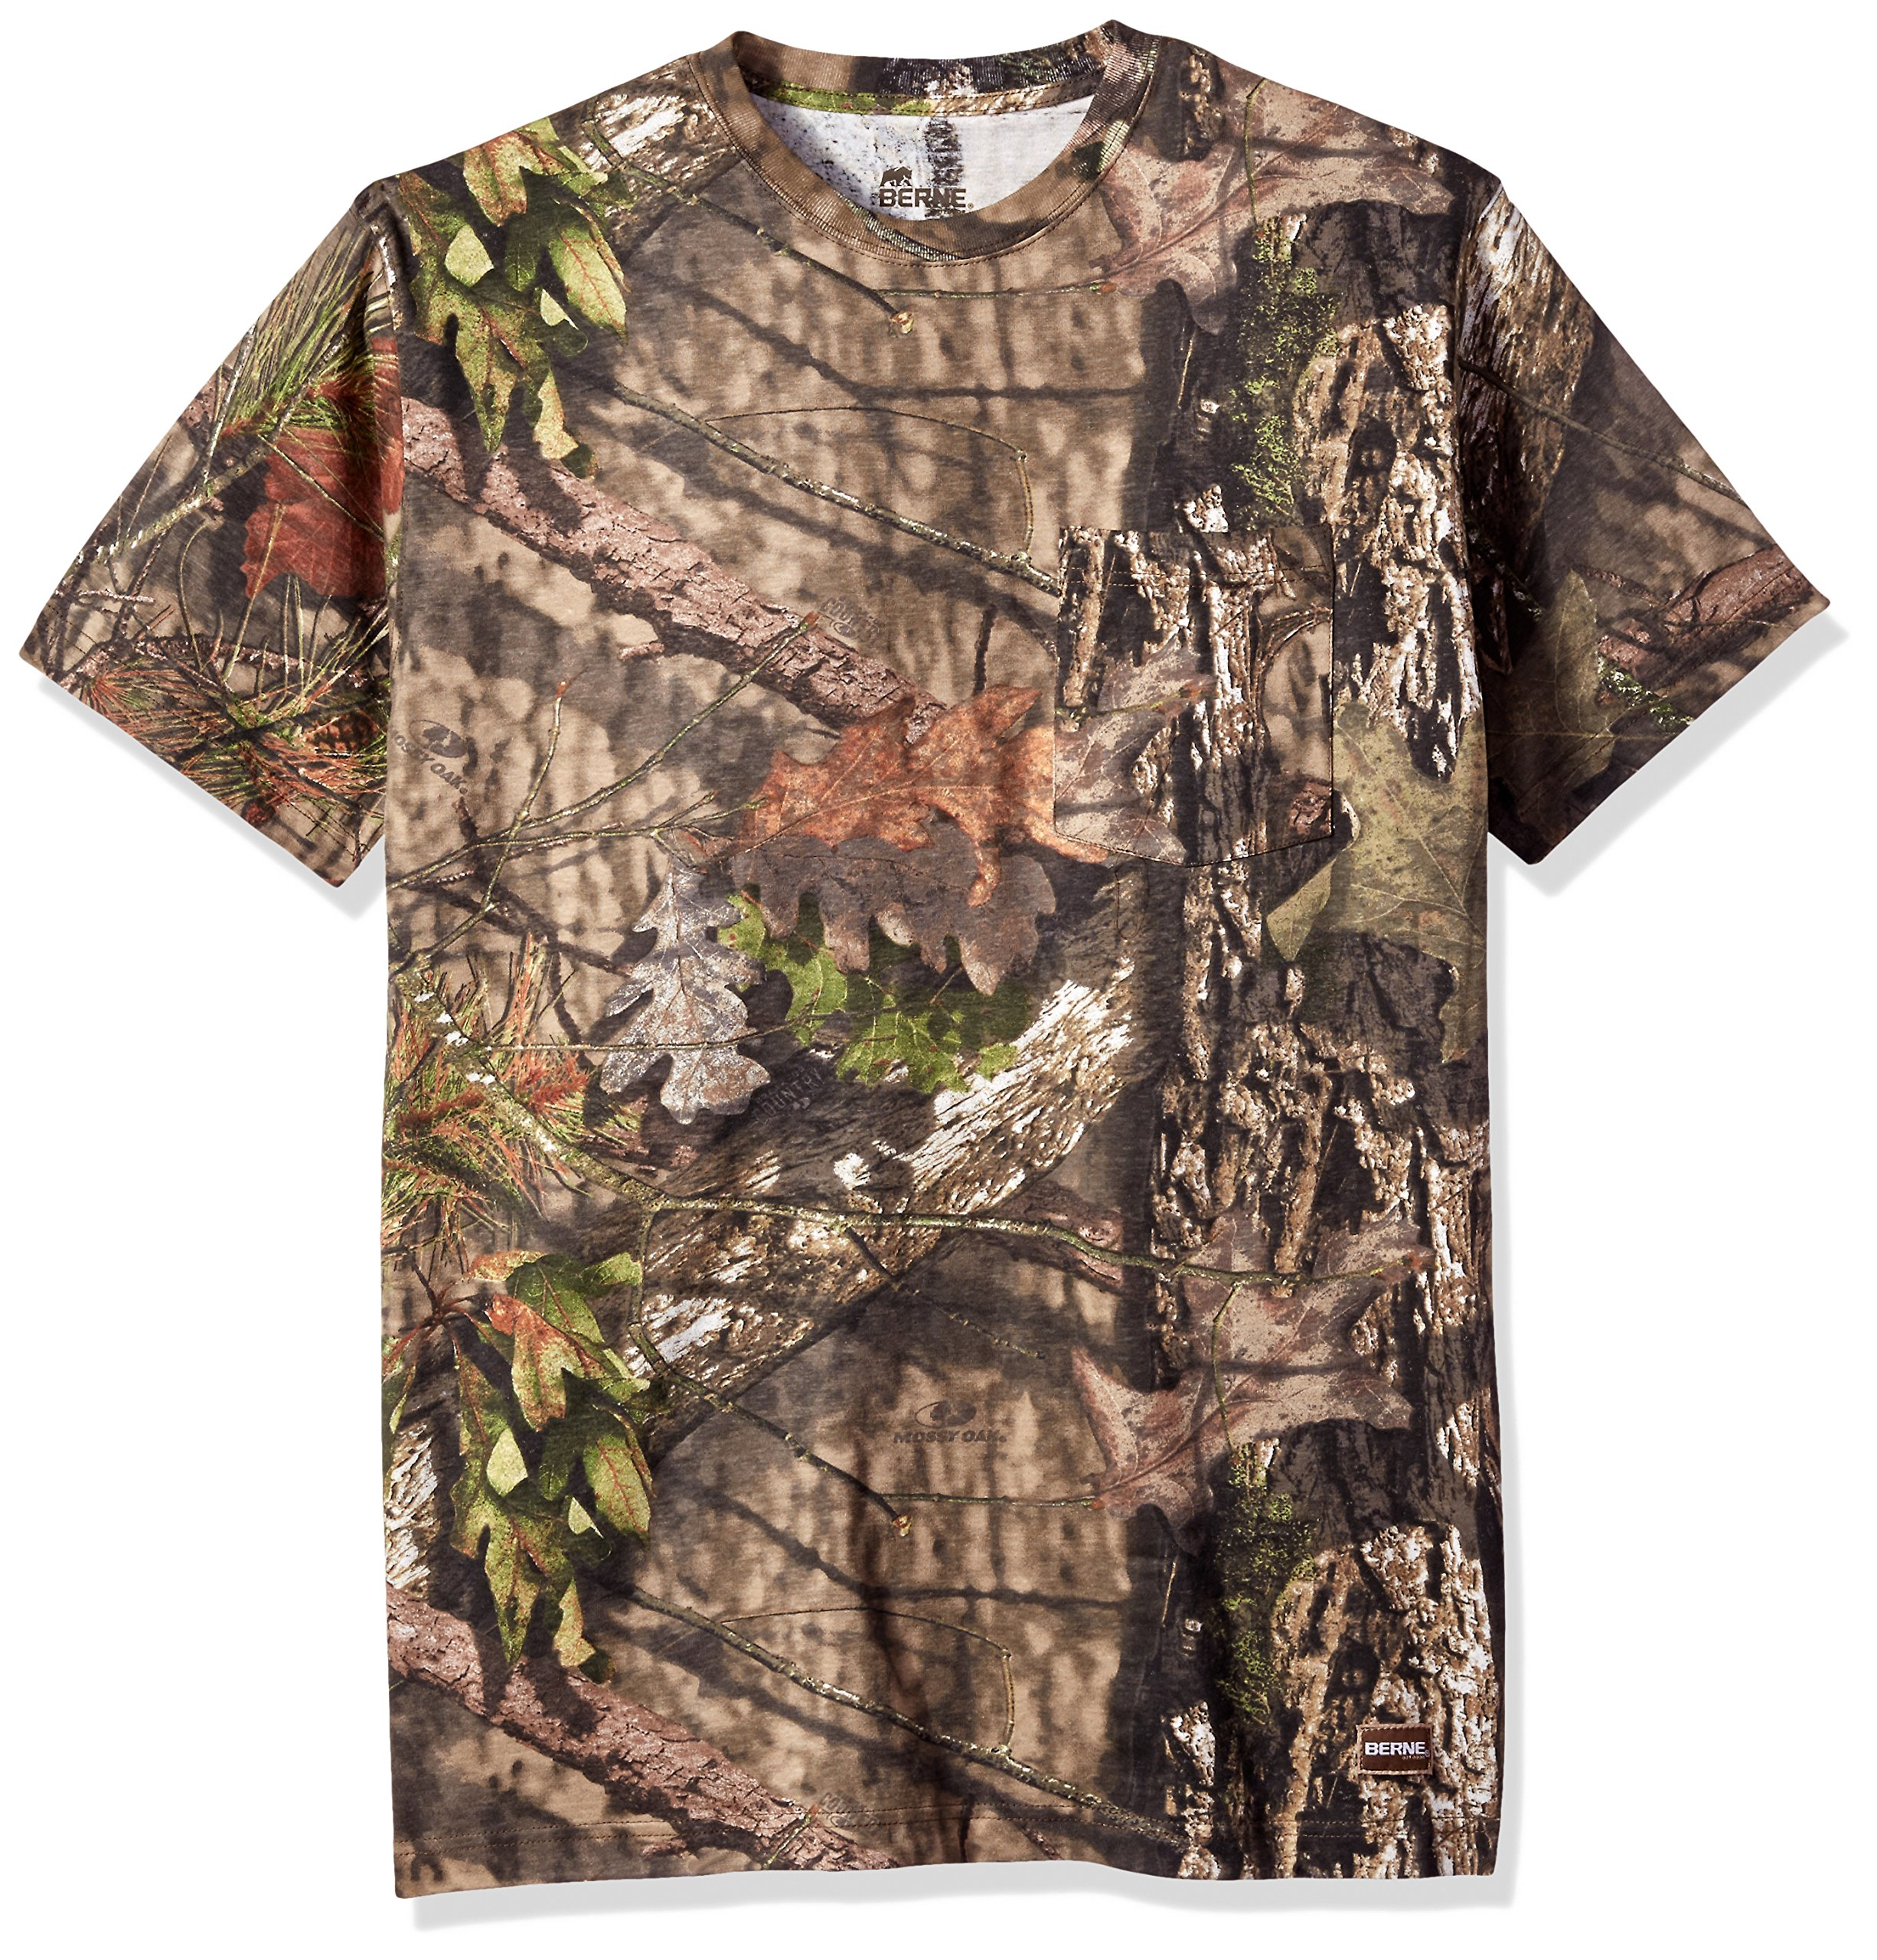 Berne Men's Short Shot Camouflage Pocket Tee Shirt, Country, Large